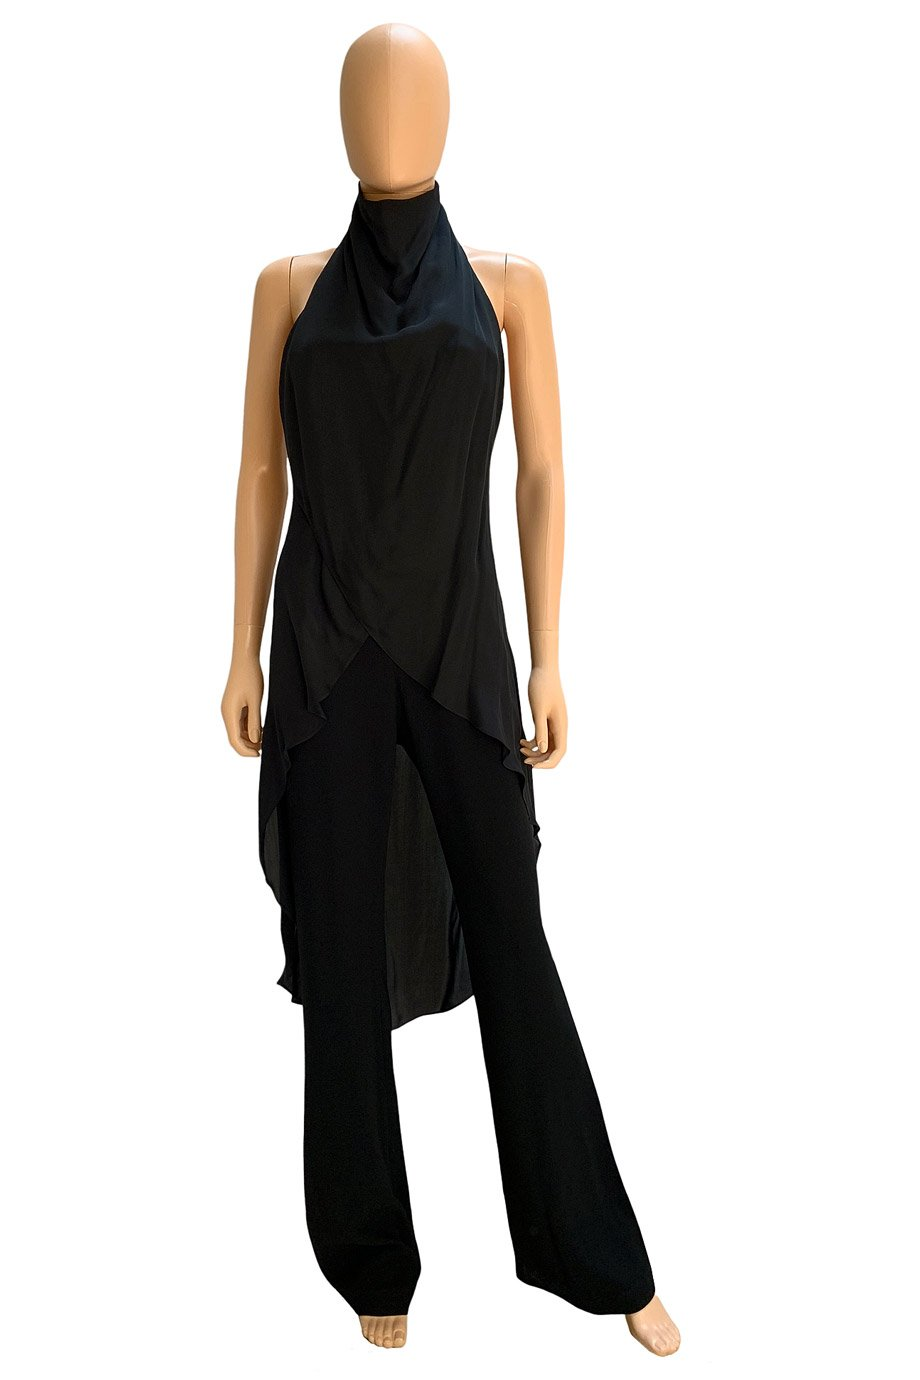 Haute Hippie Layered Black Silk + Crepe Halter Jumpsuit / Sz 4